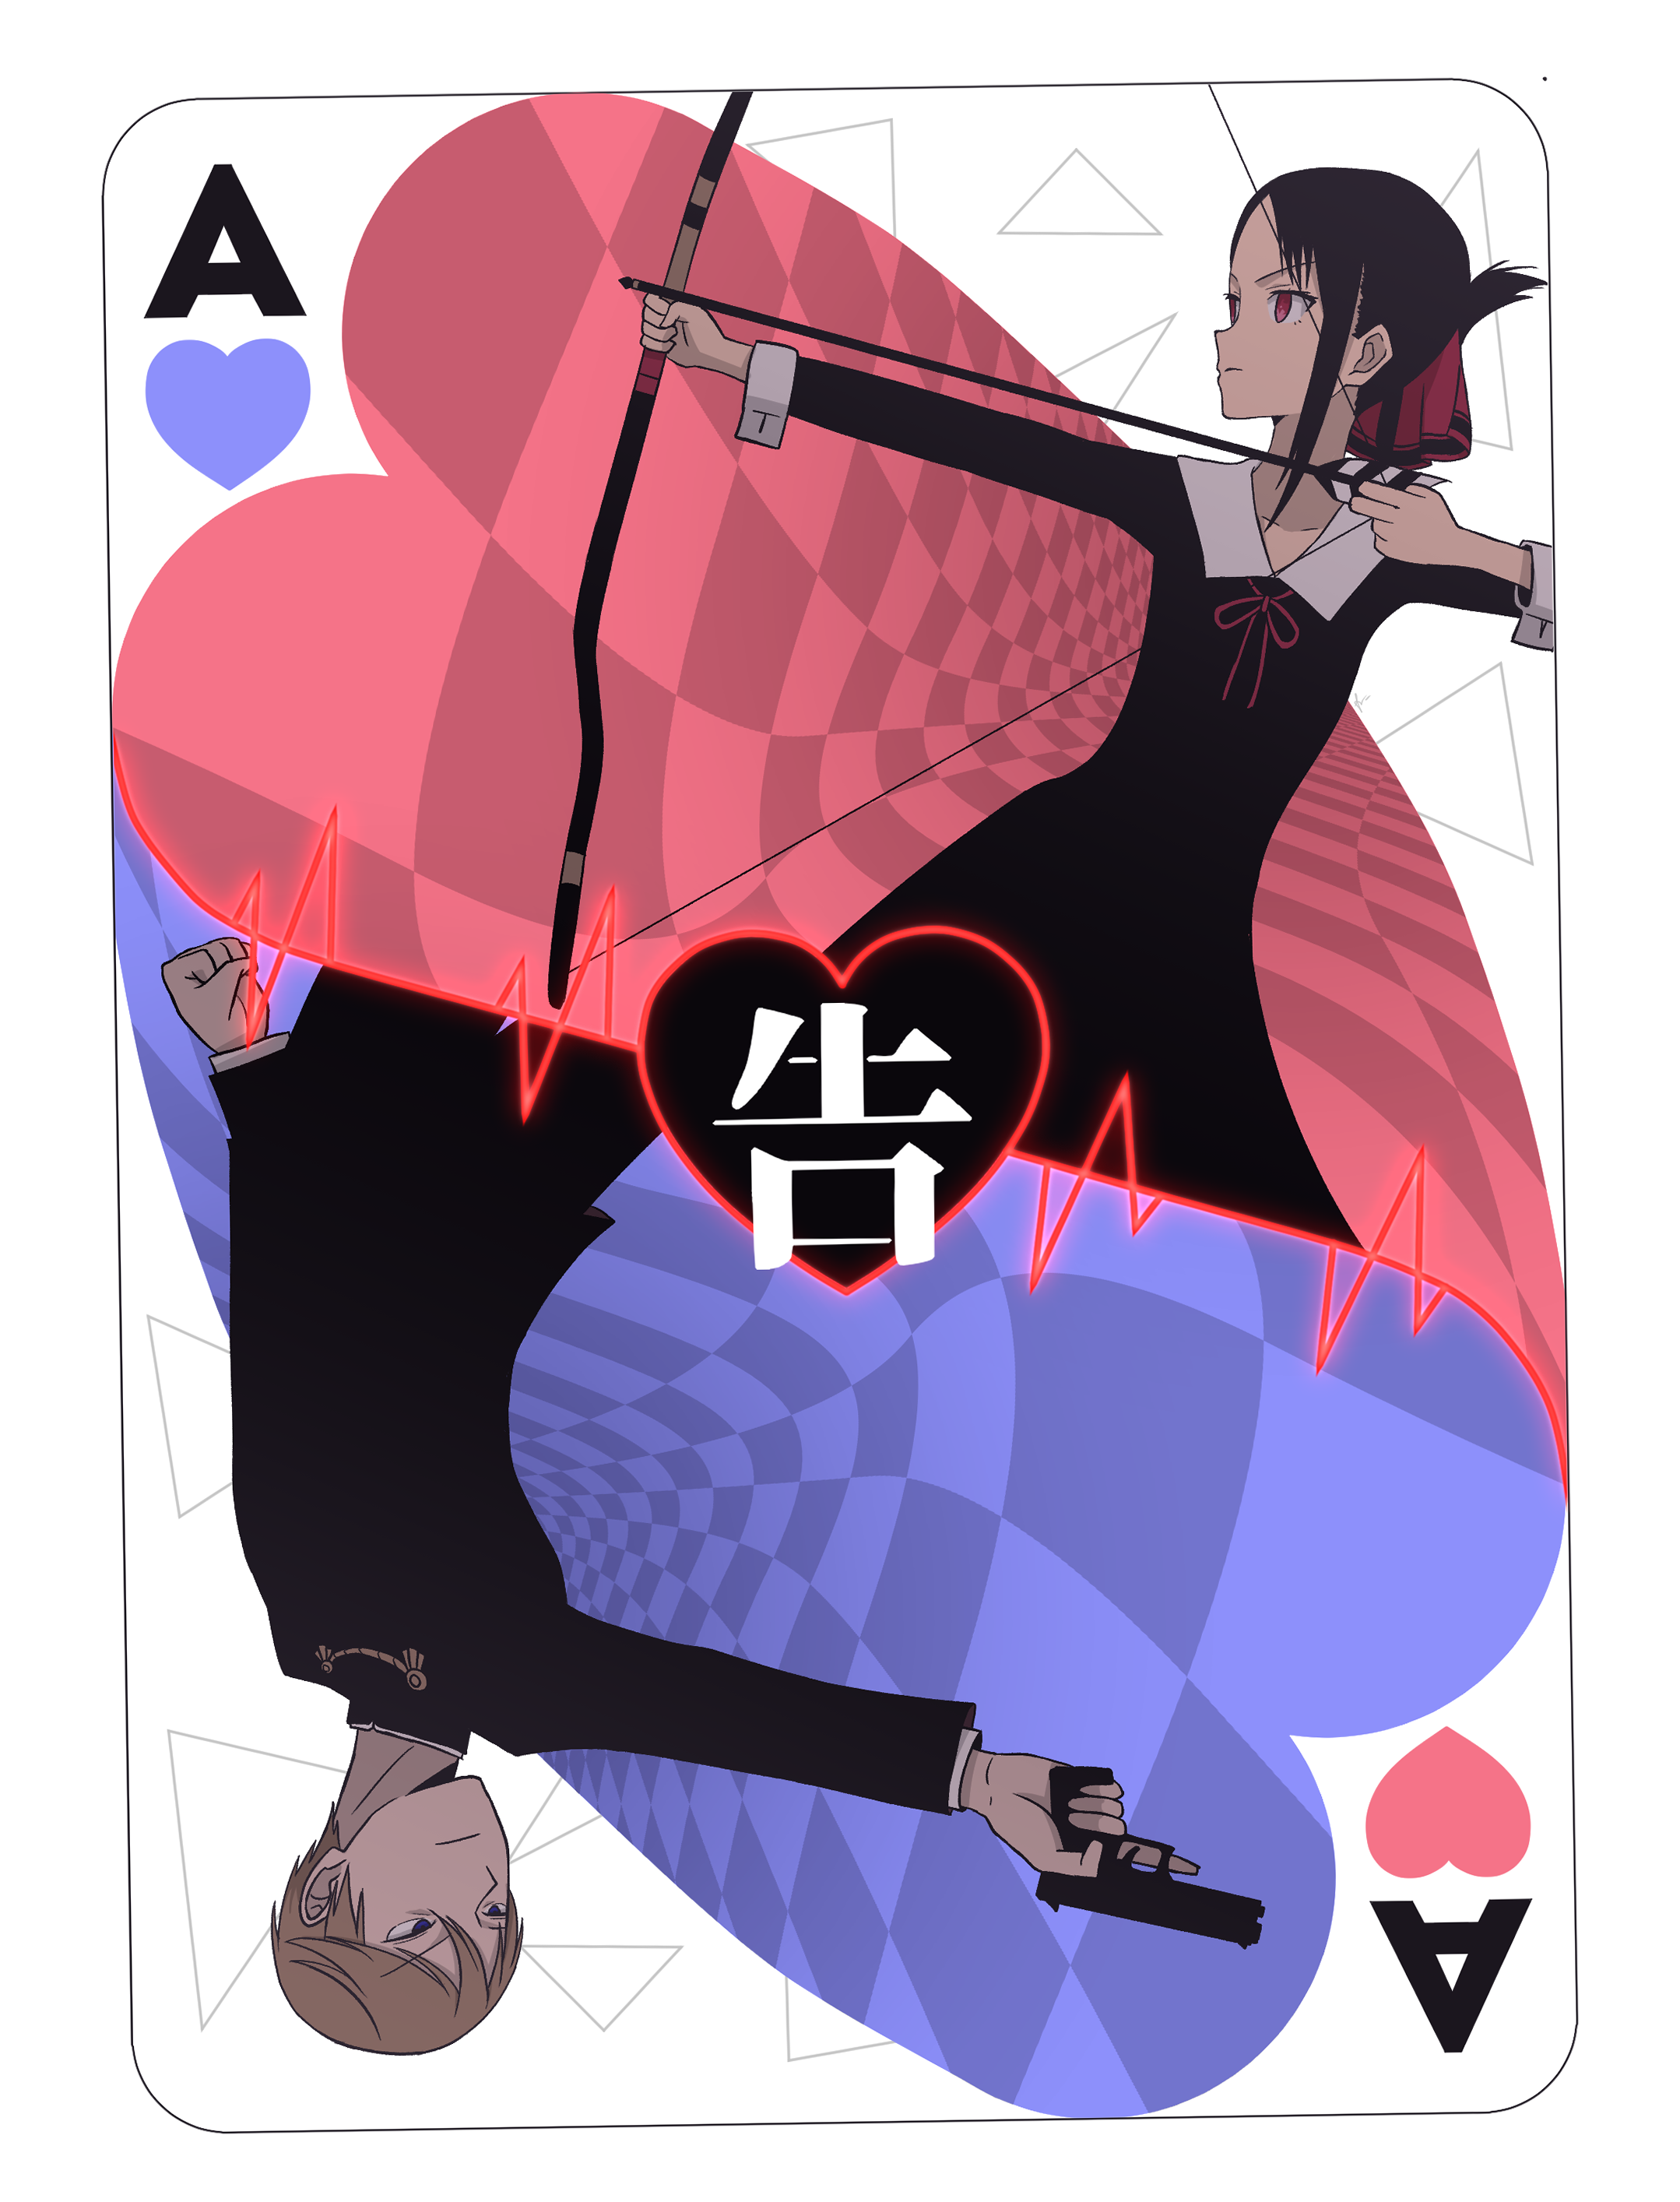 The Ace of Love. The War of Hearts